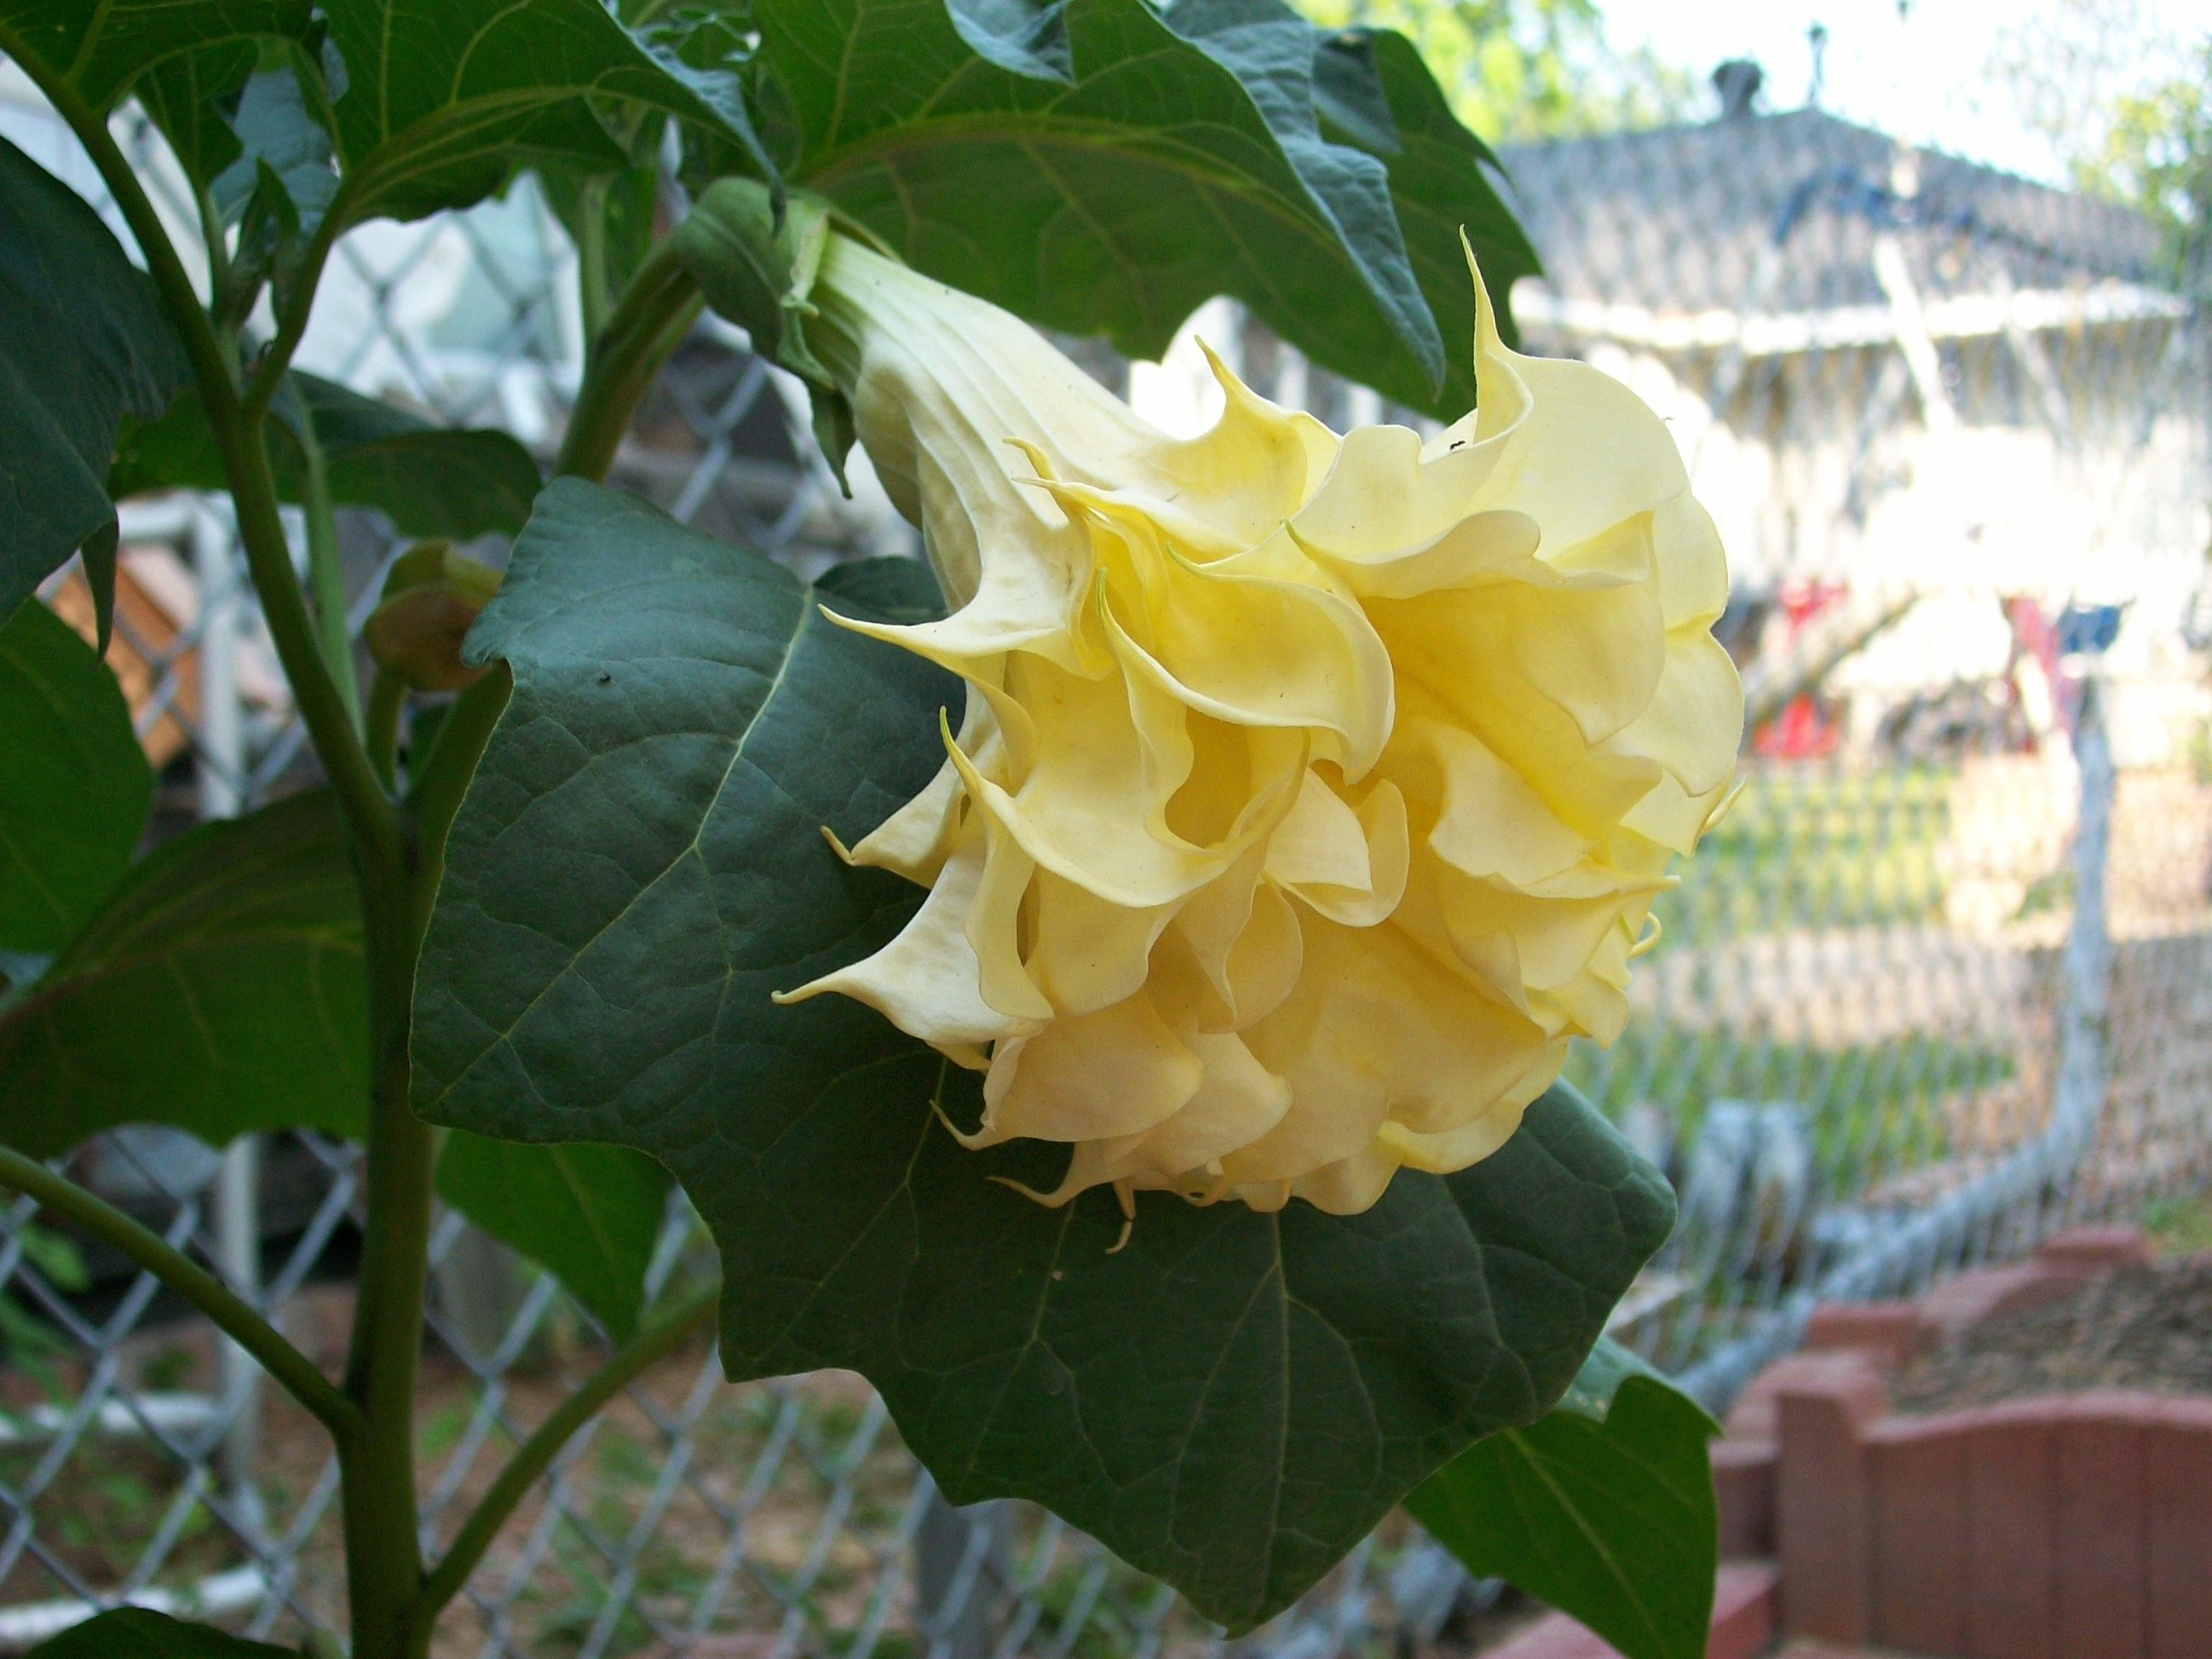 Double ruffled yellow Angels Trumpet Angel Trumpets Brugmansia